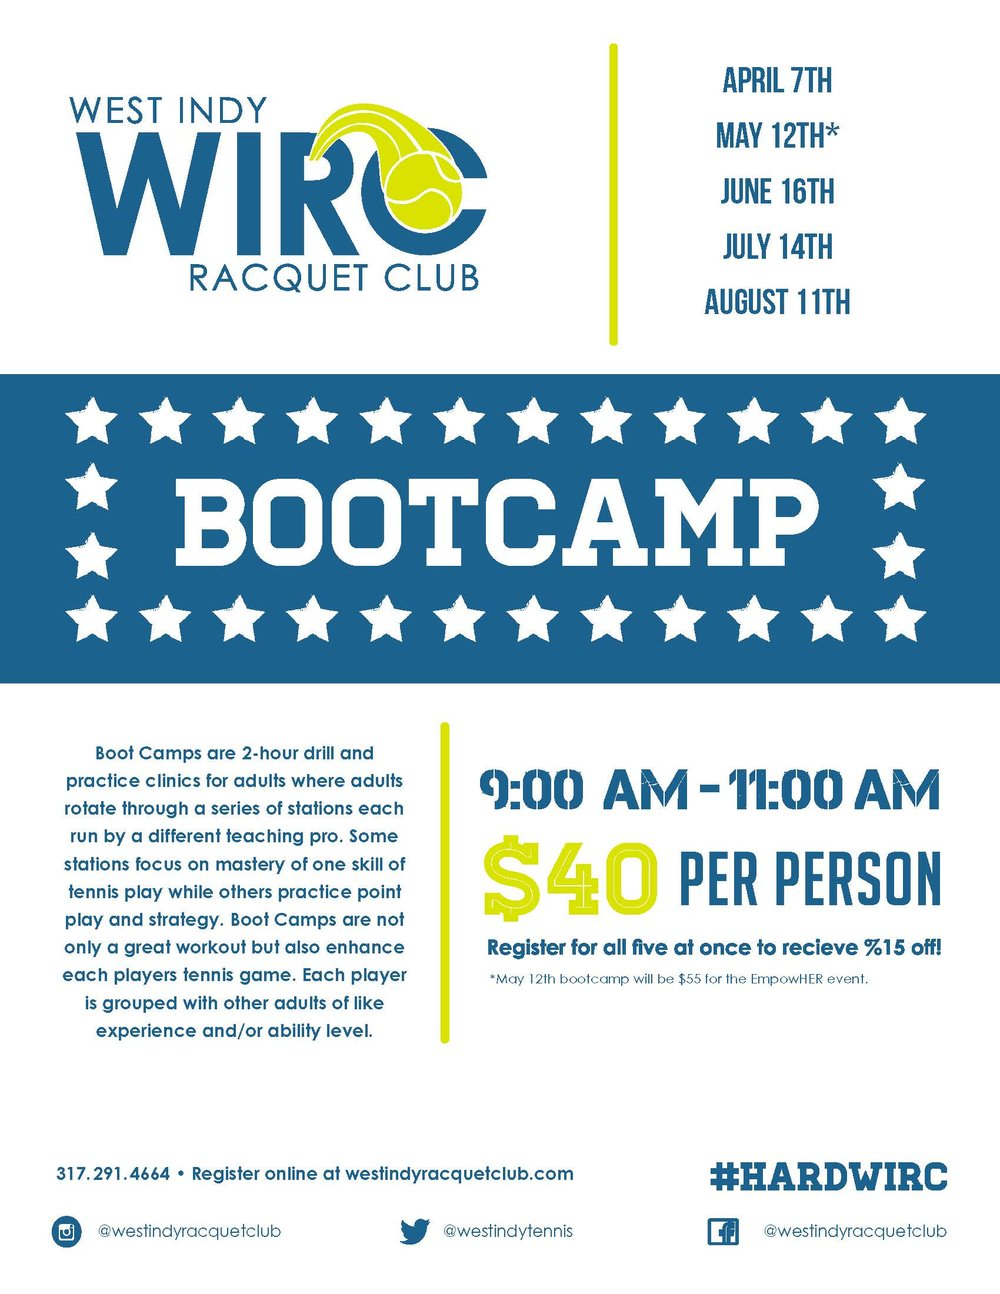 WIRC_Bootcamp_flyer.jpg